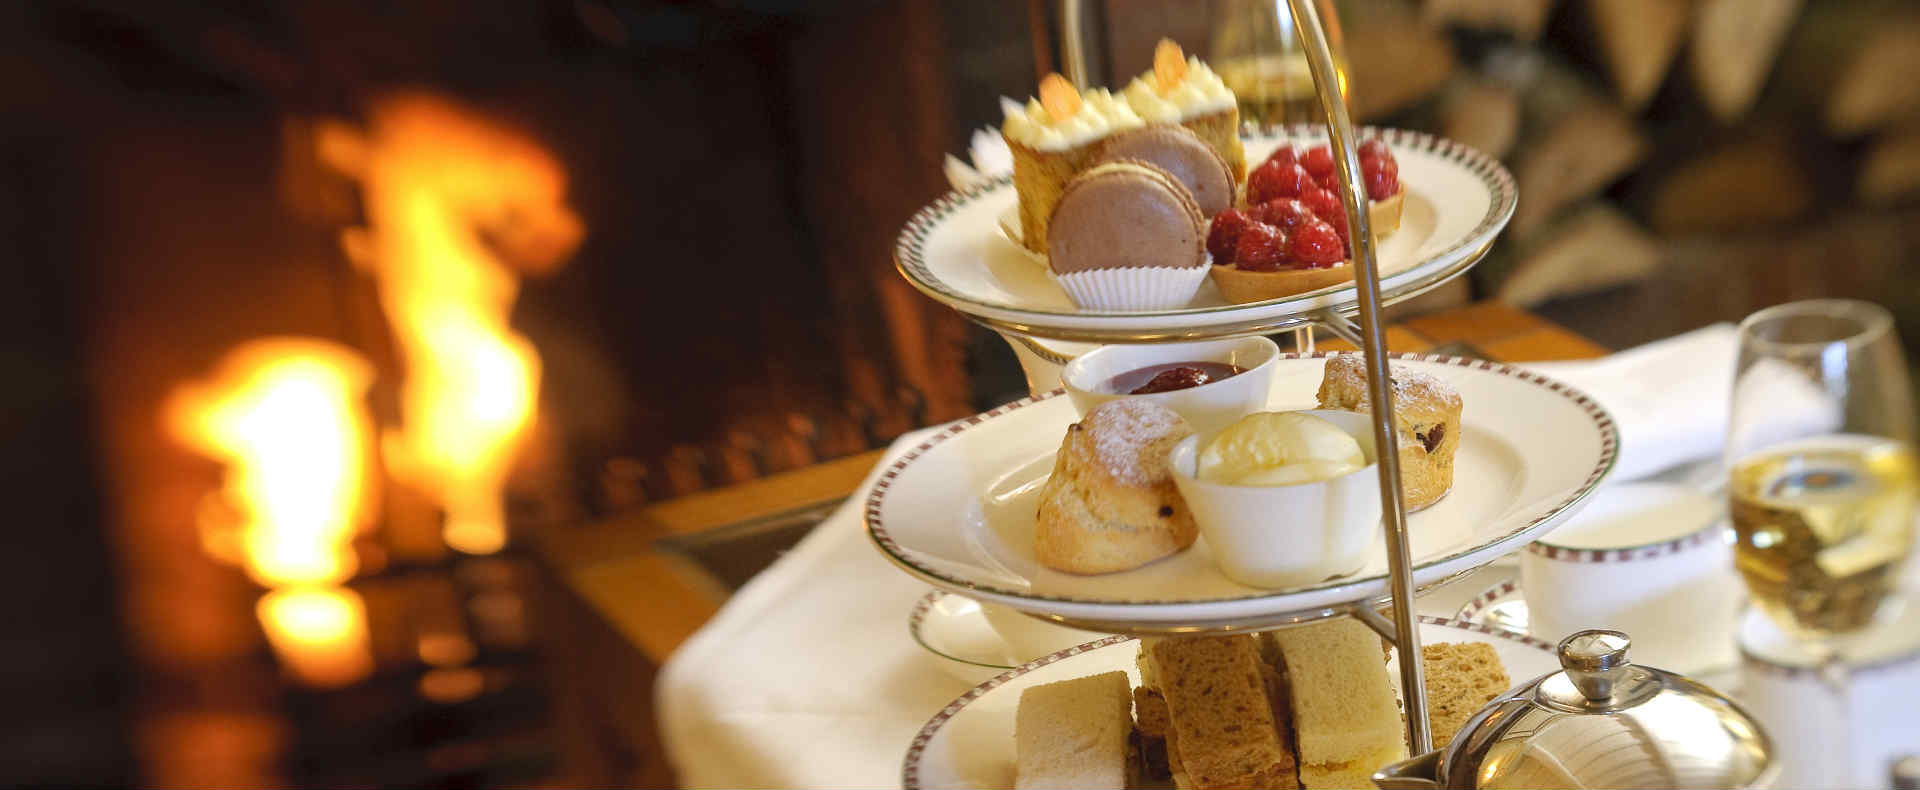 Let's Toast To The British Tradition Of Afternoon Tea! | Montagu Arms1